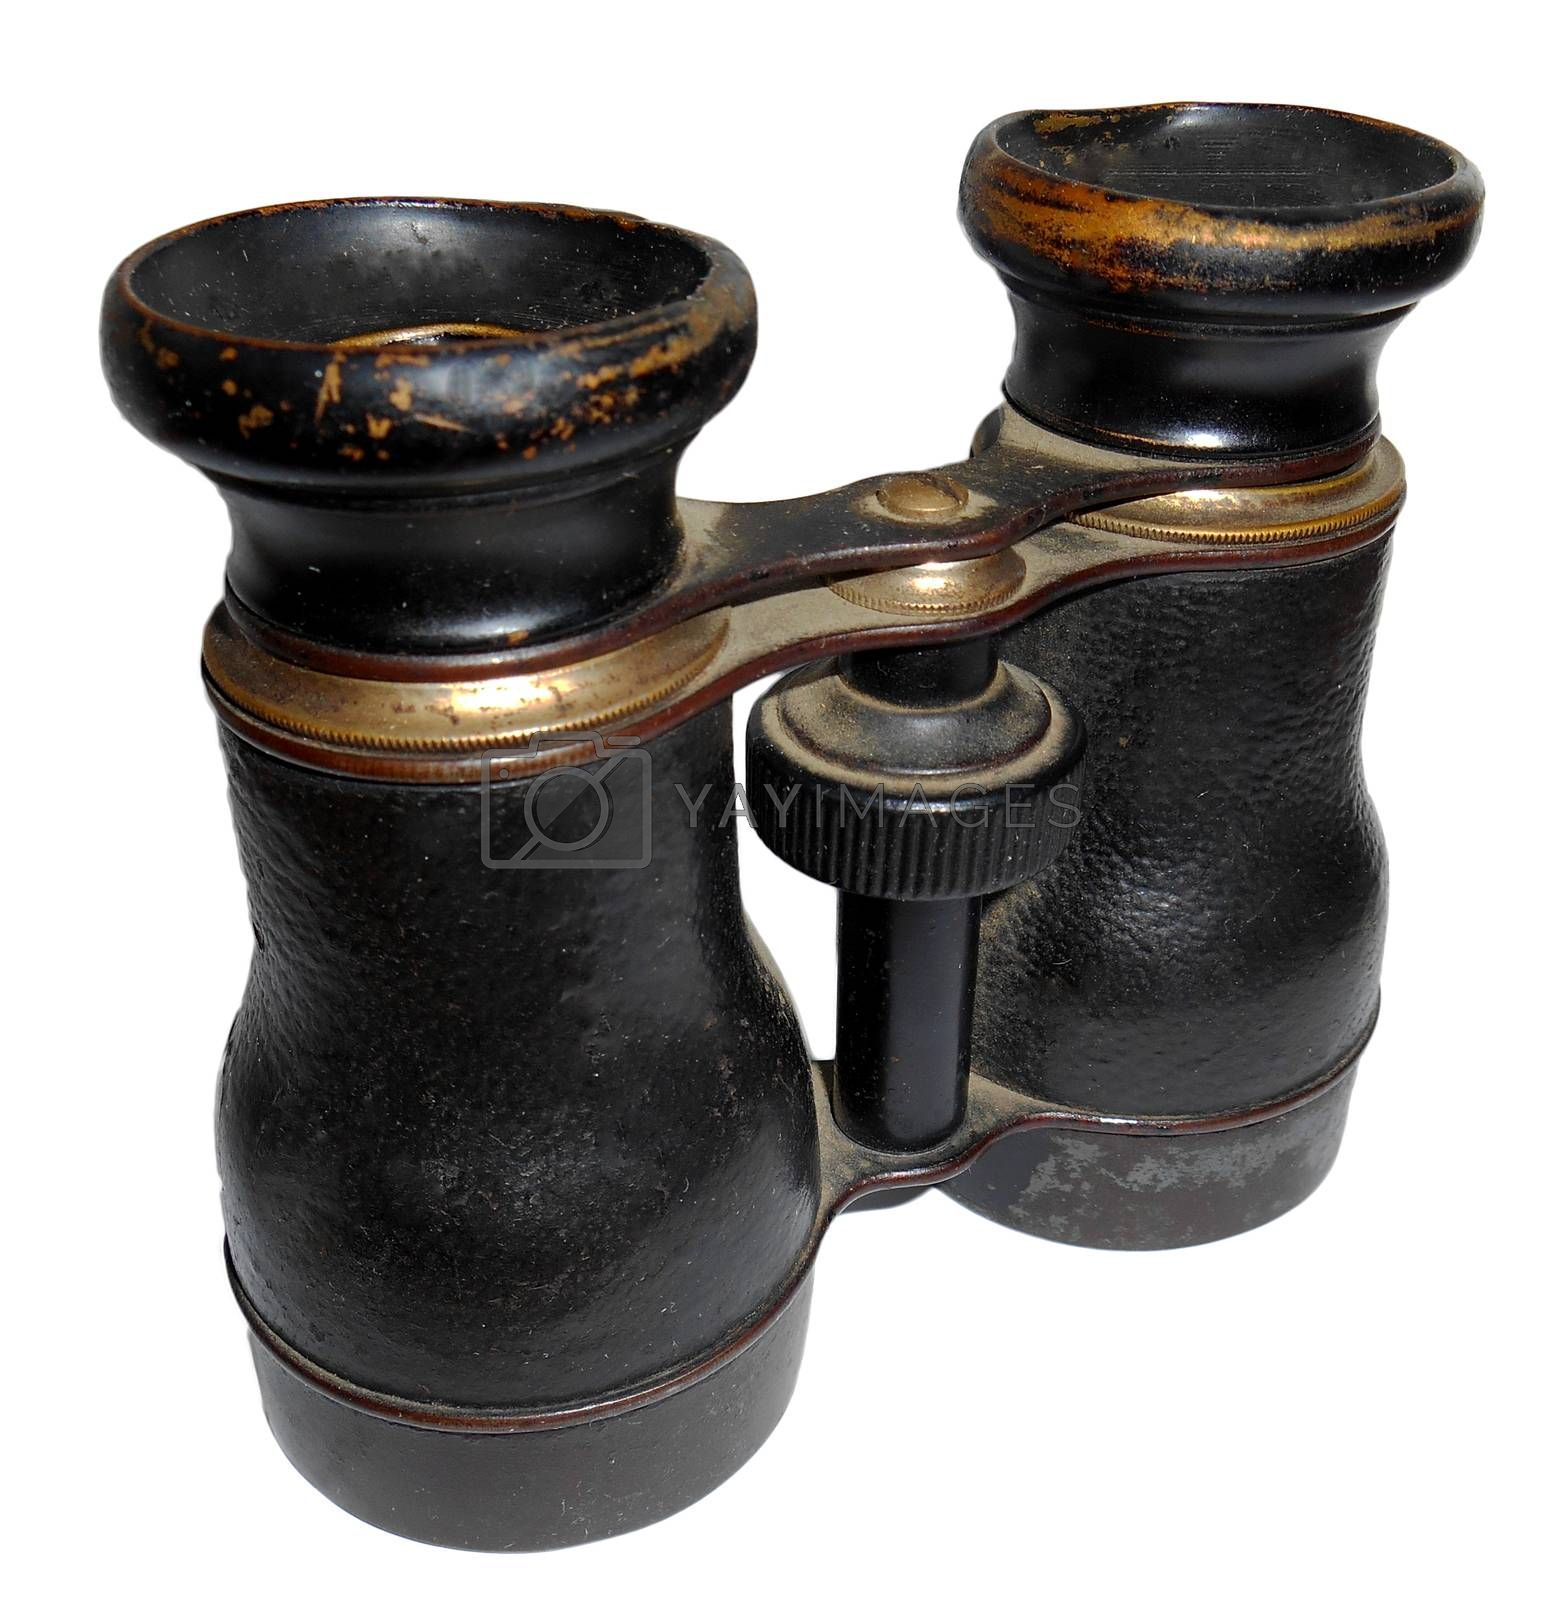 Old- fashioned binoculars, isolated on white.  Picture taken on November 22, 2014.